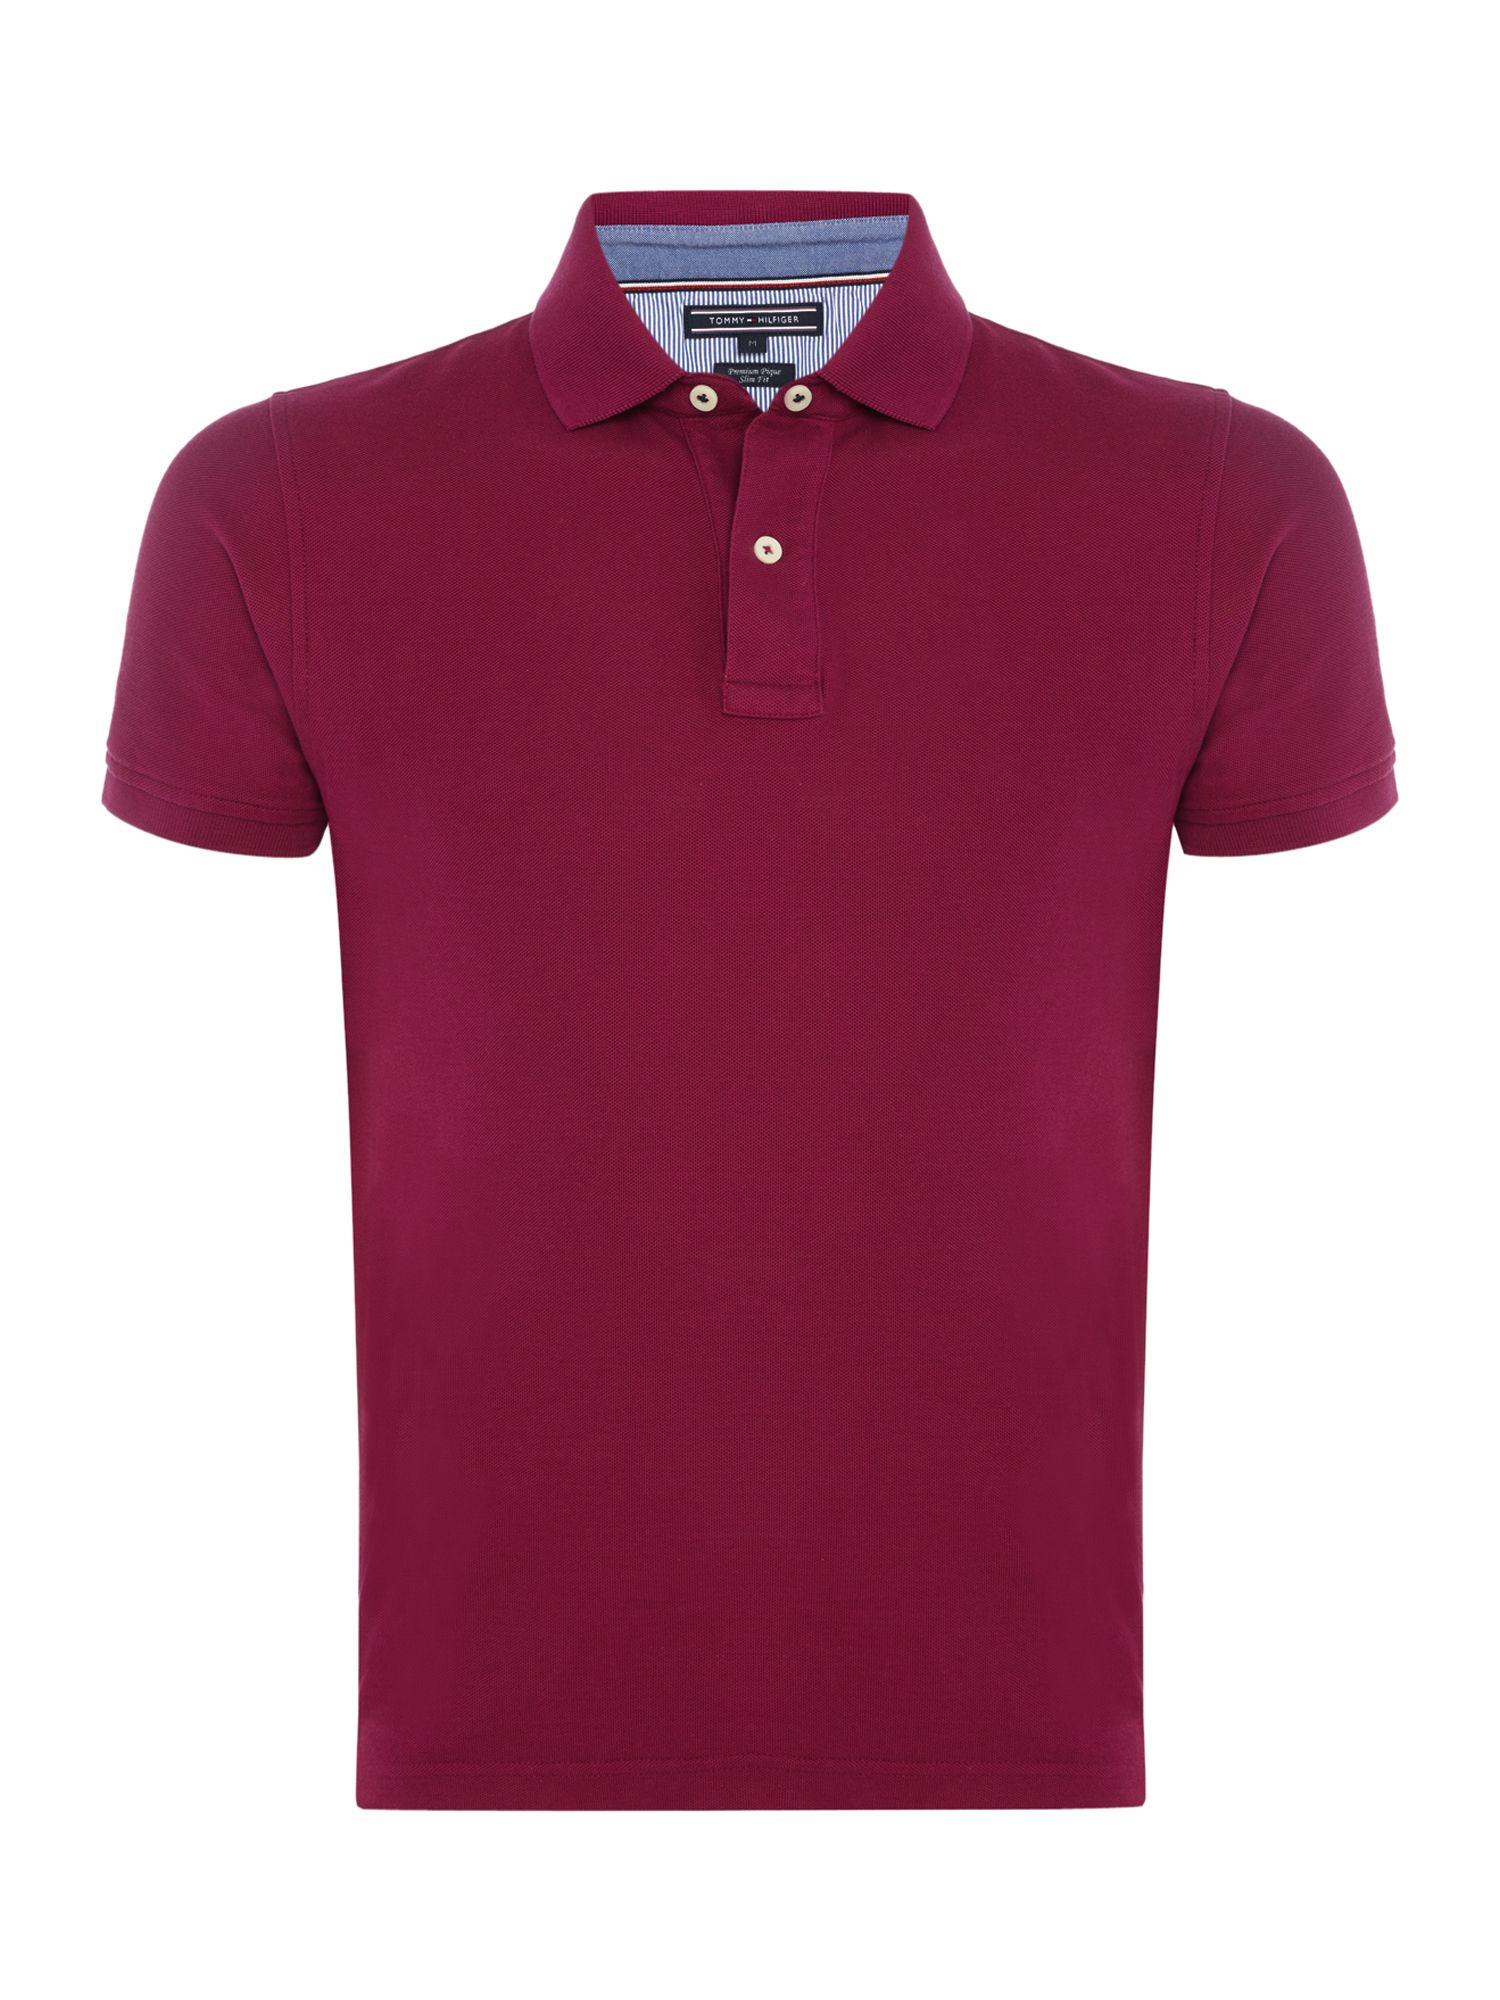 Men's Tommy Hilfiger Performance polo top, Purple